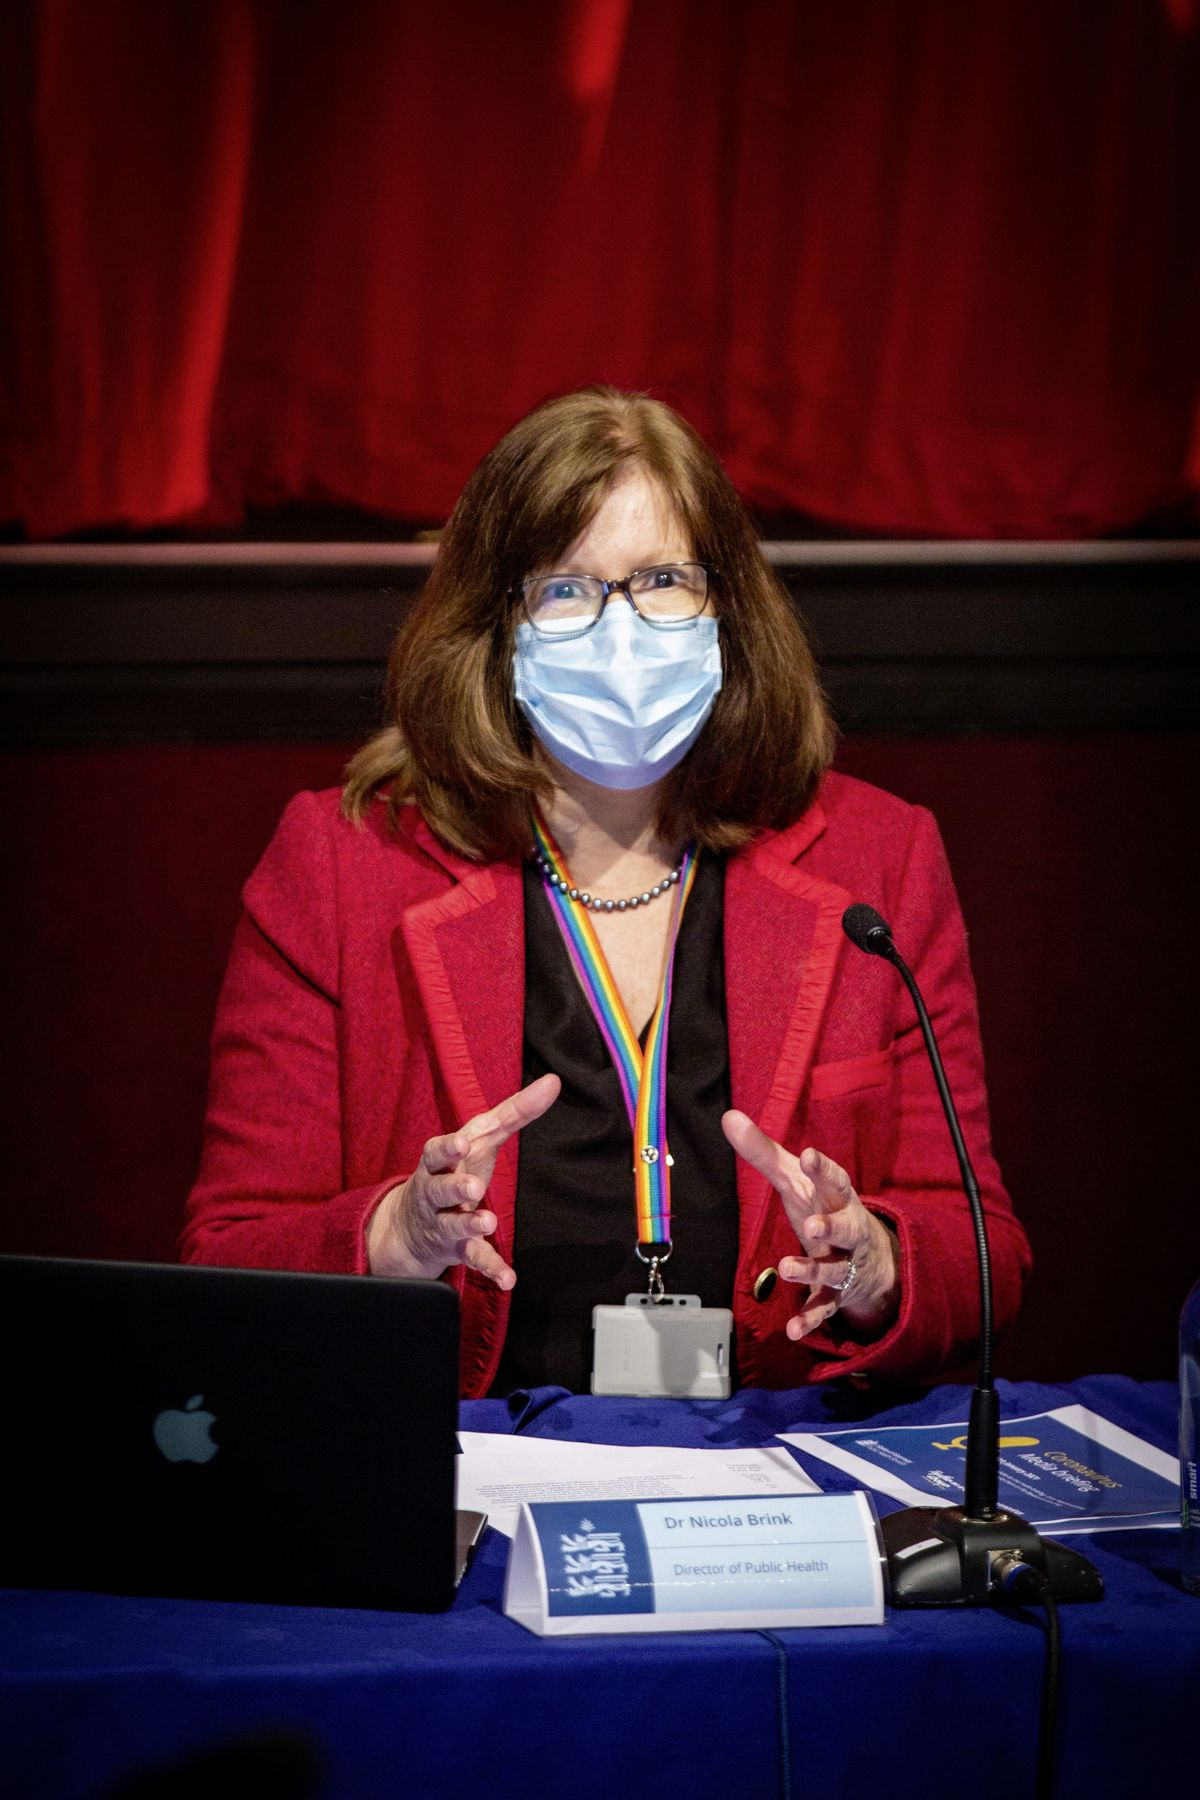 Director of Public Health Dr Nicola Brink at a previous press briefing wearing a face mask. (Picture by Sophie Rabey, 29184614)